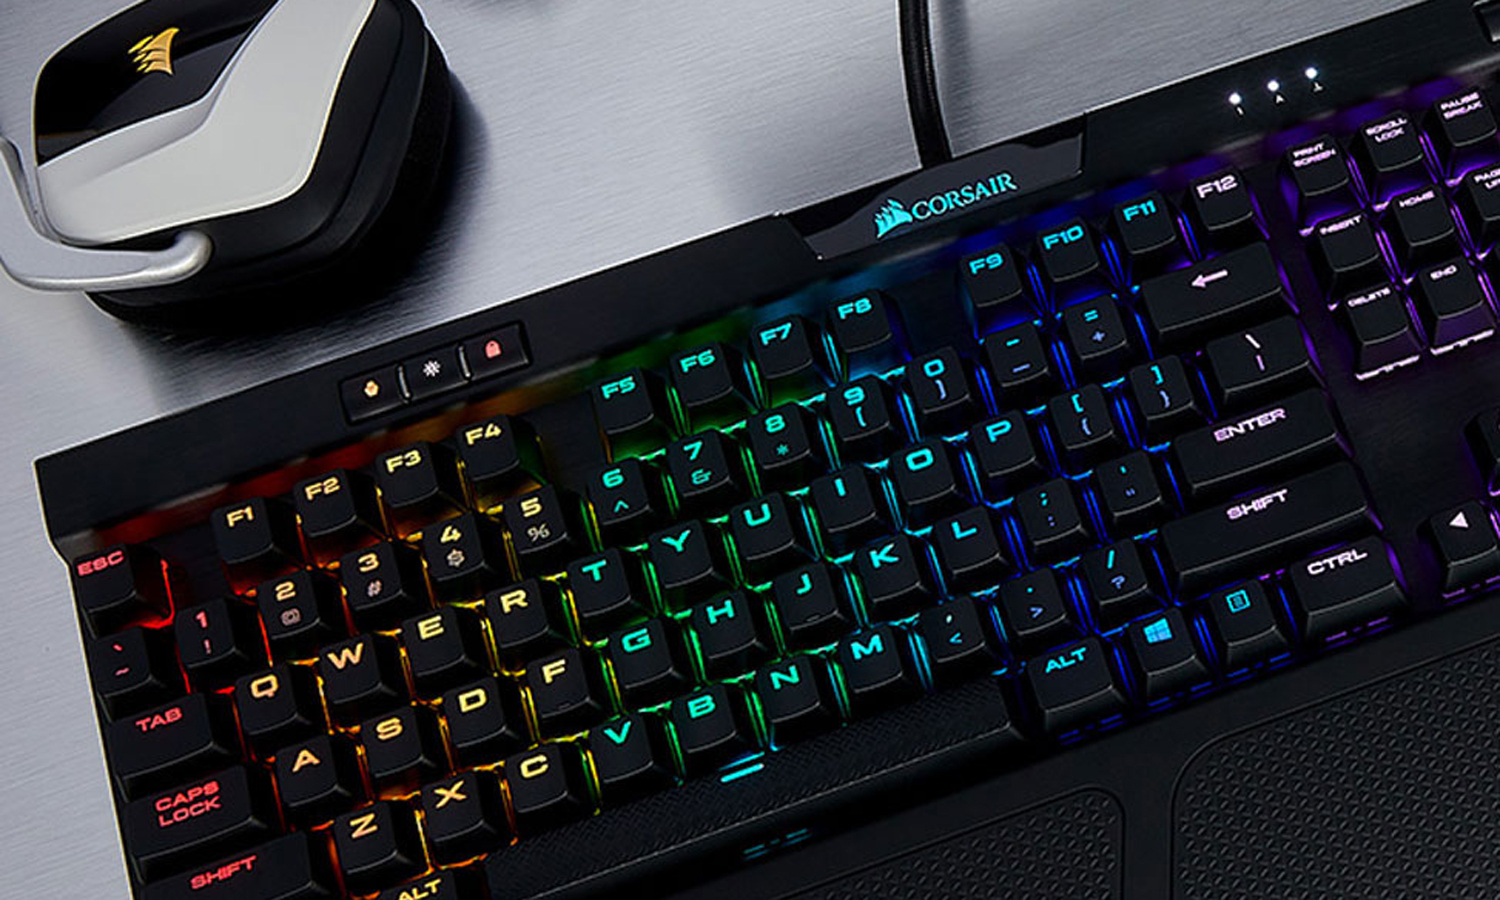 ee90862971d Corsair K70 RGB Mk.2 Review: The Best Gaming Keyboard You Can Buy | Tom's  Guide